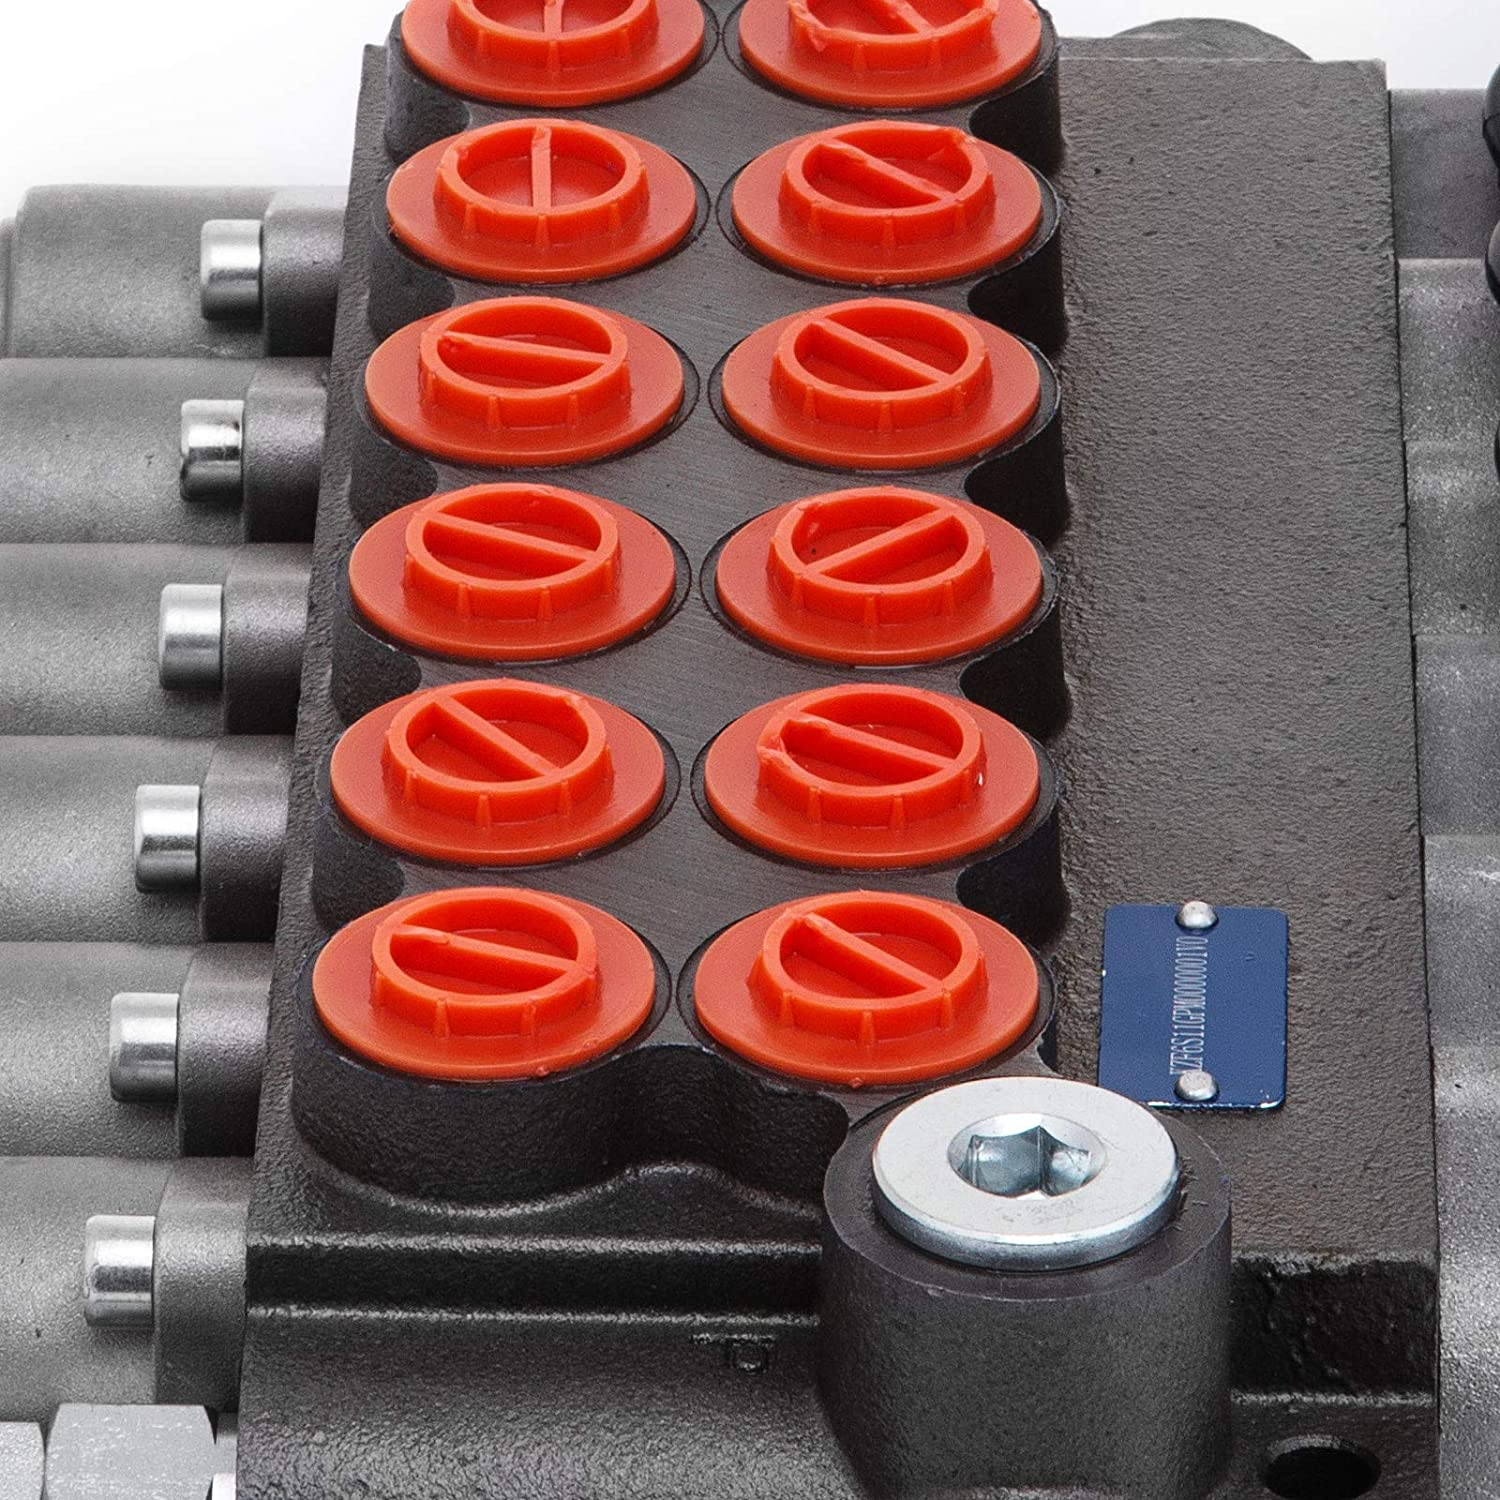 Mophorn 6 Spool Hydraulic Directional Control Valve 11gpm Double Acting Cylinder Spool